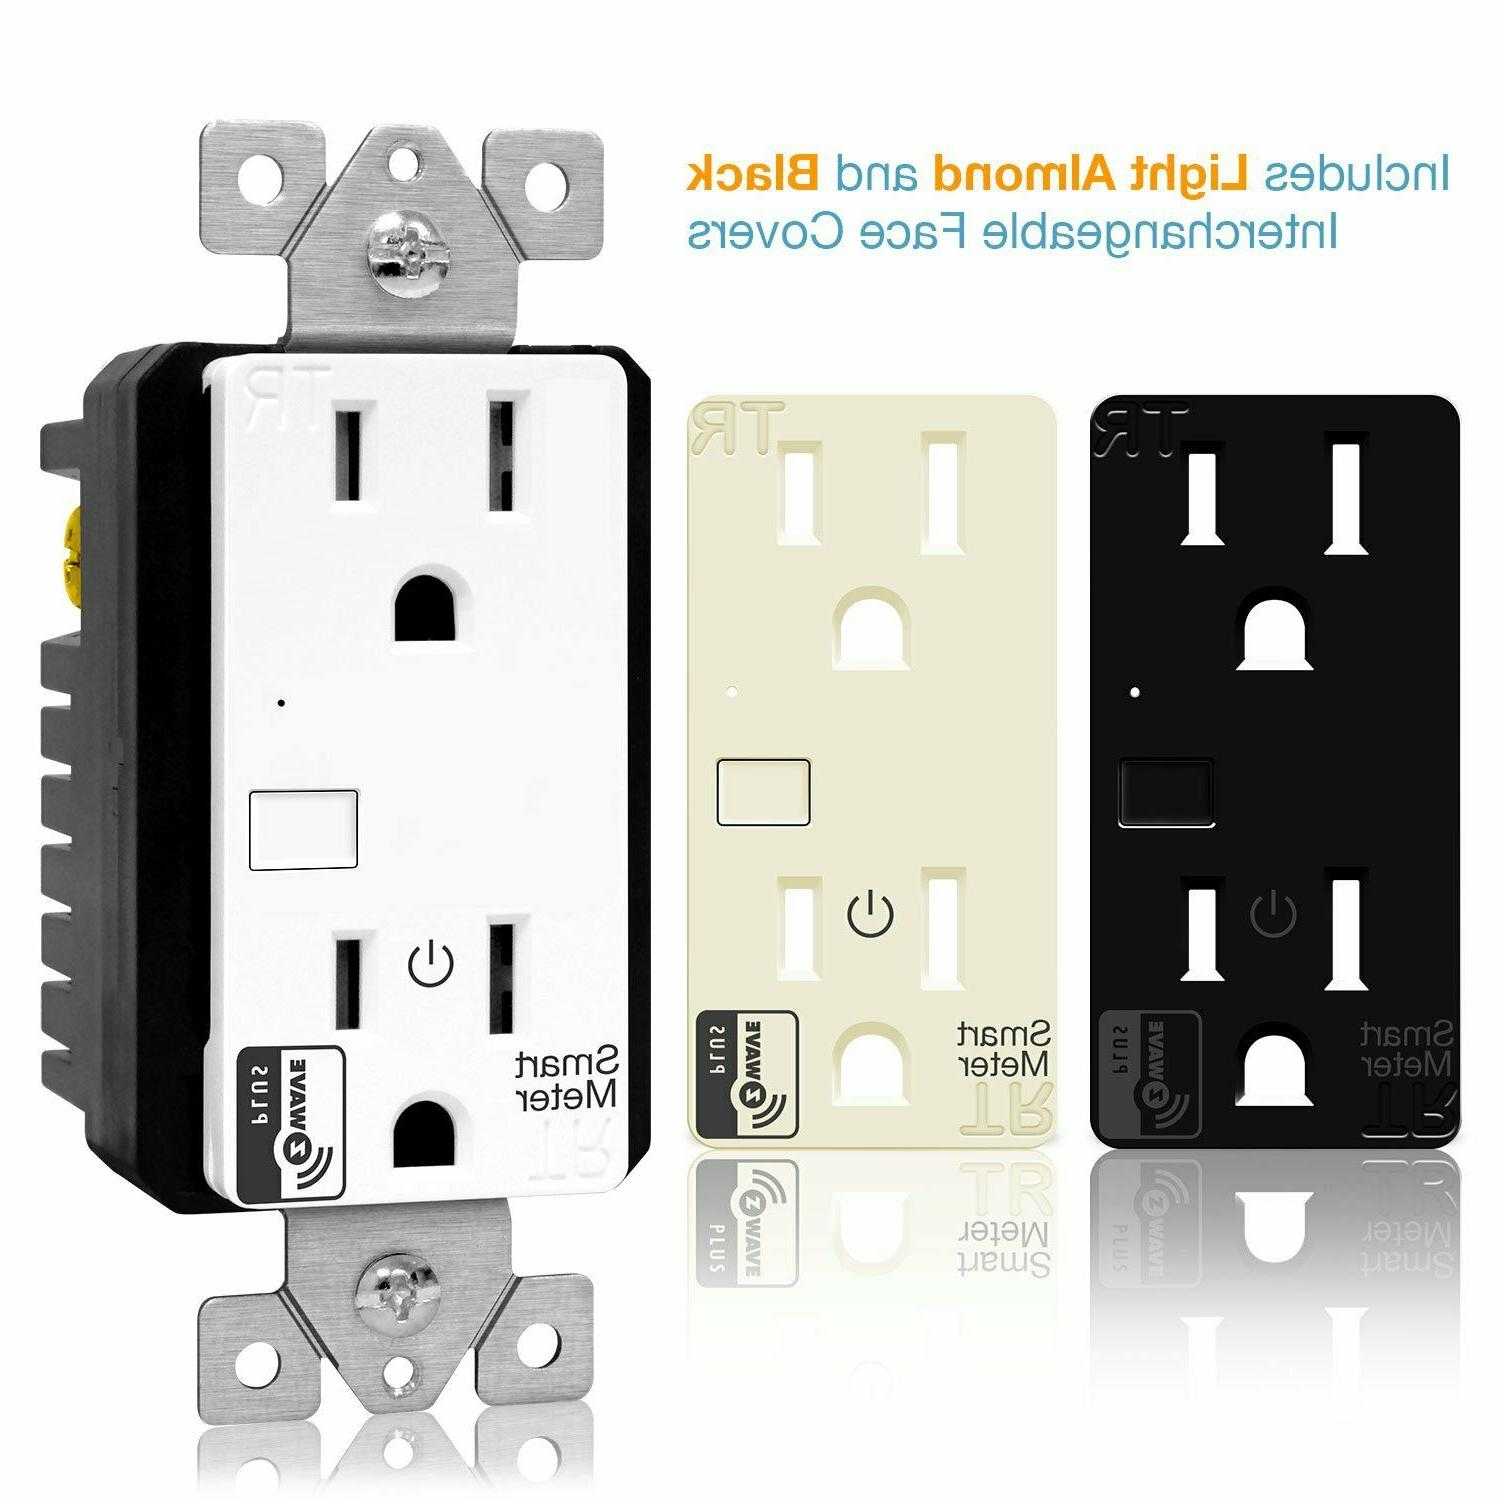 ENERWAVE Z-Wave Plus Outlet with Smart Meter Energy